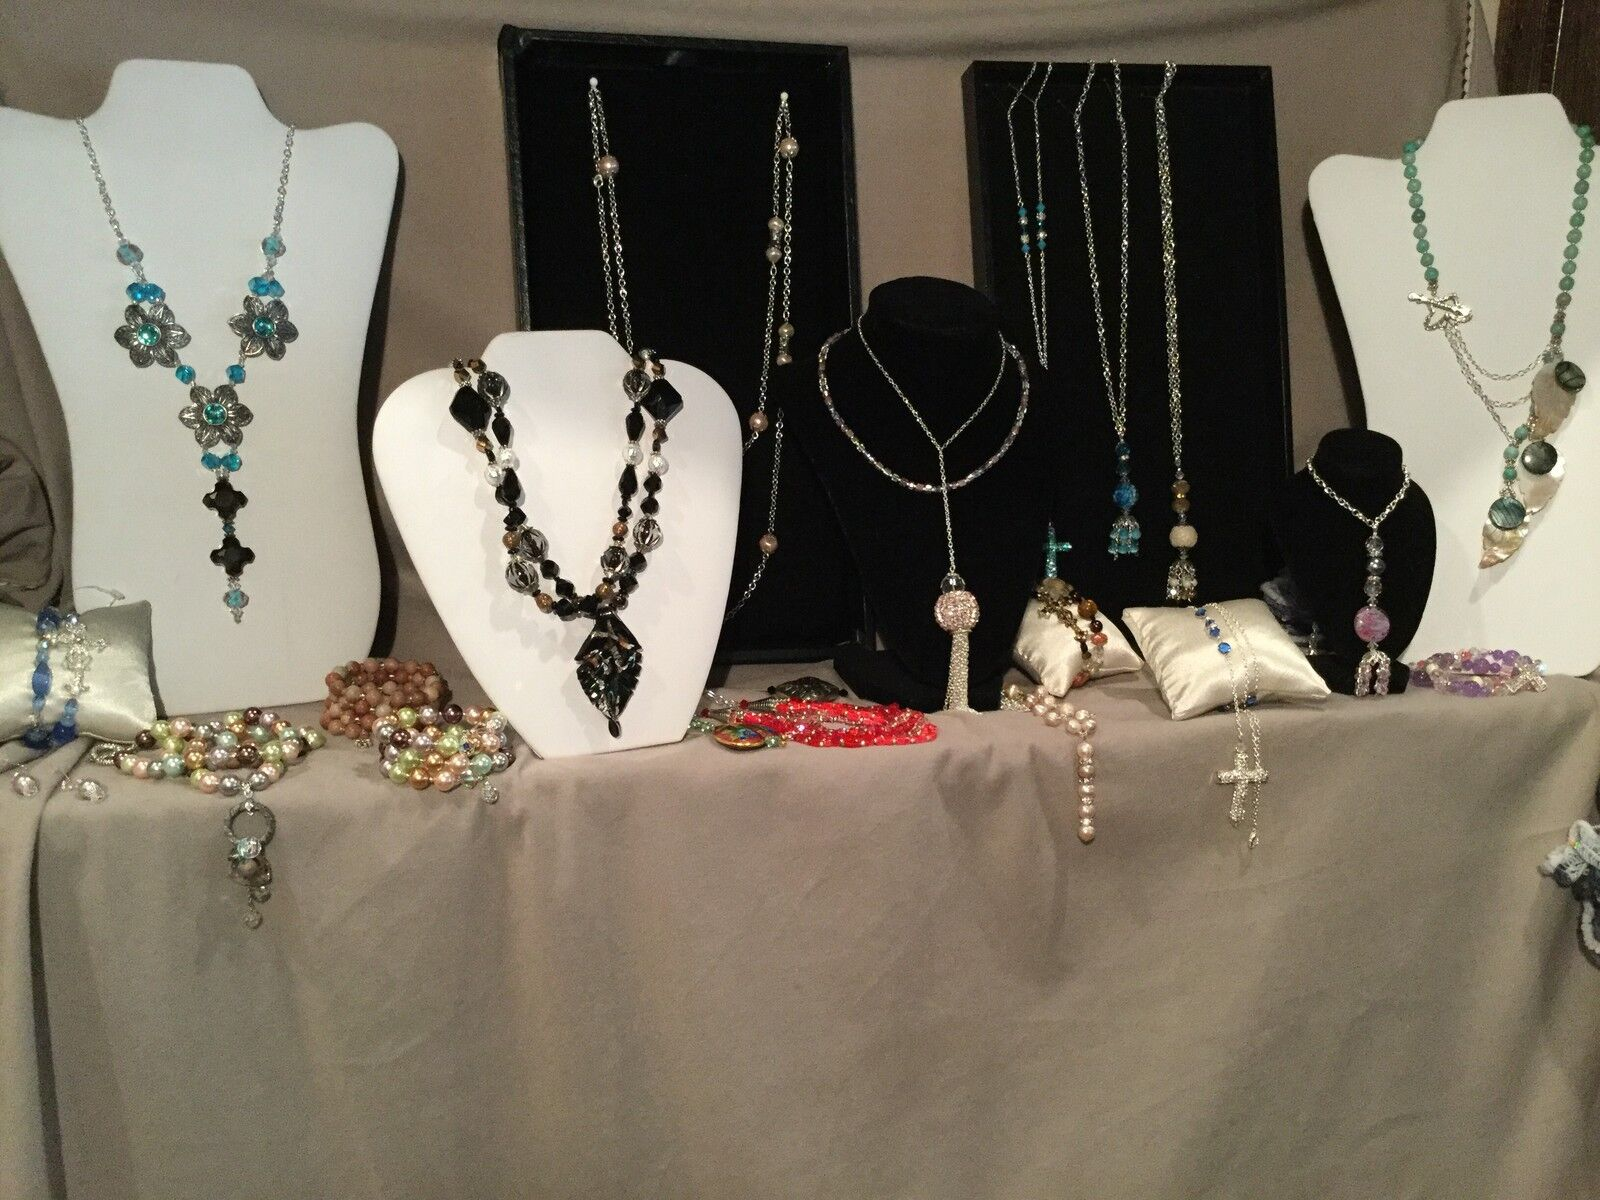 Beaded Treasures and More